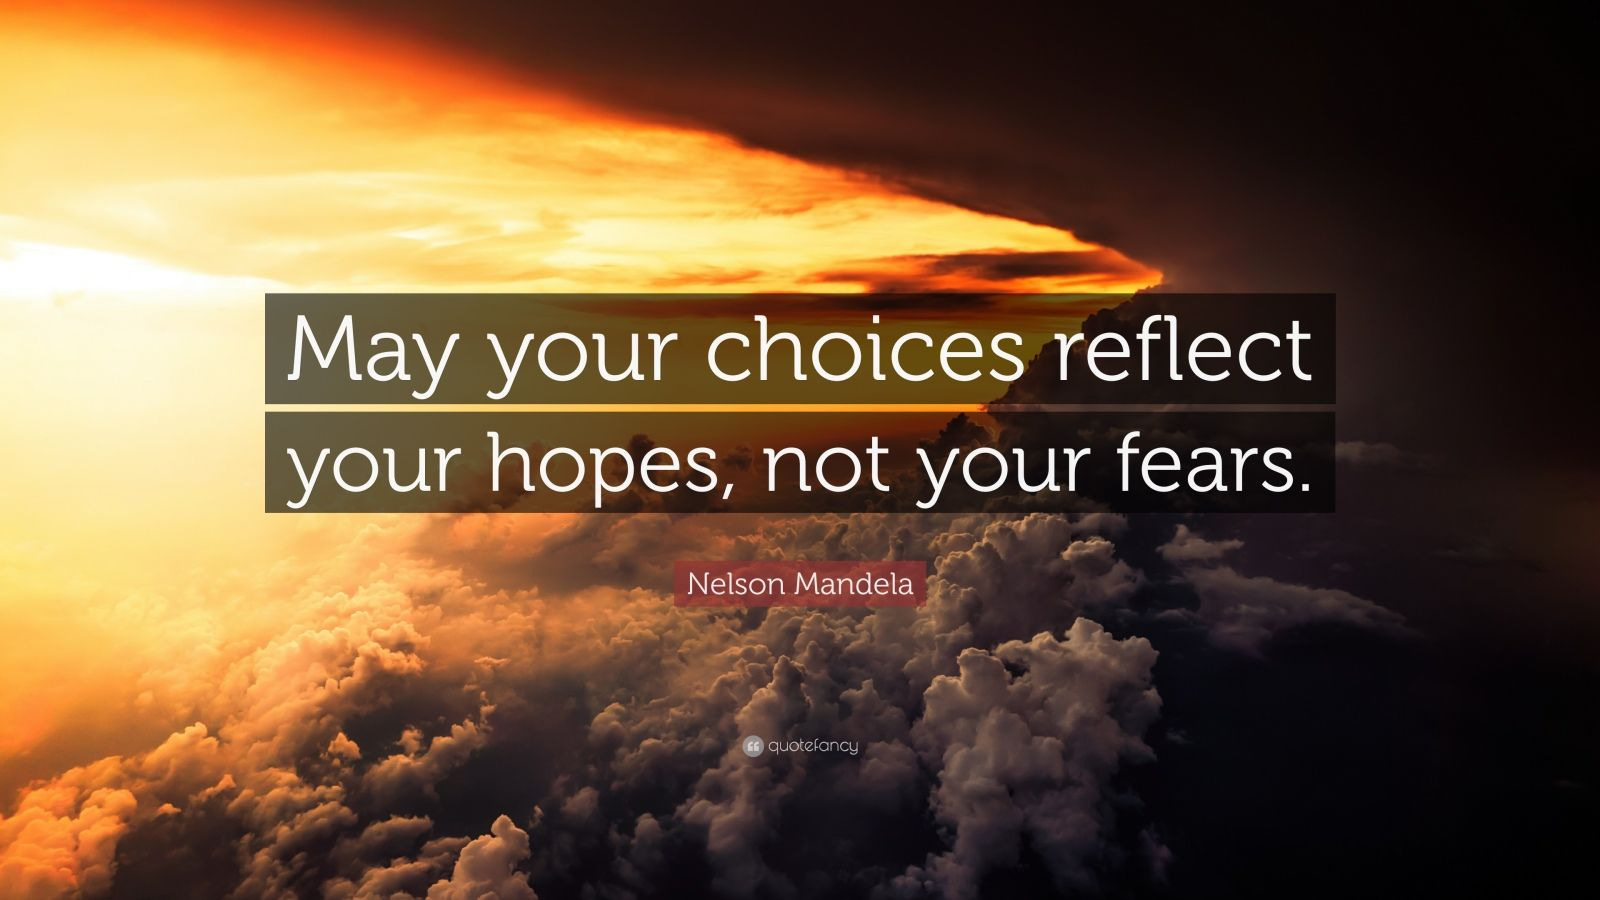 Gandhi Wallpapers With Quotes Nelson Mandela Quote May Your Choices Reflect Your Hopes